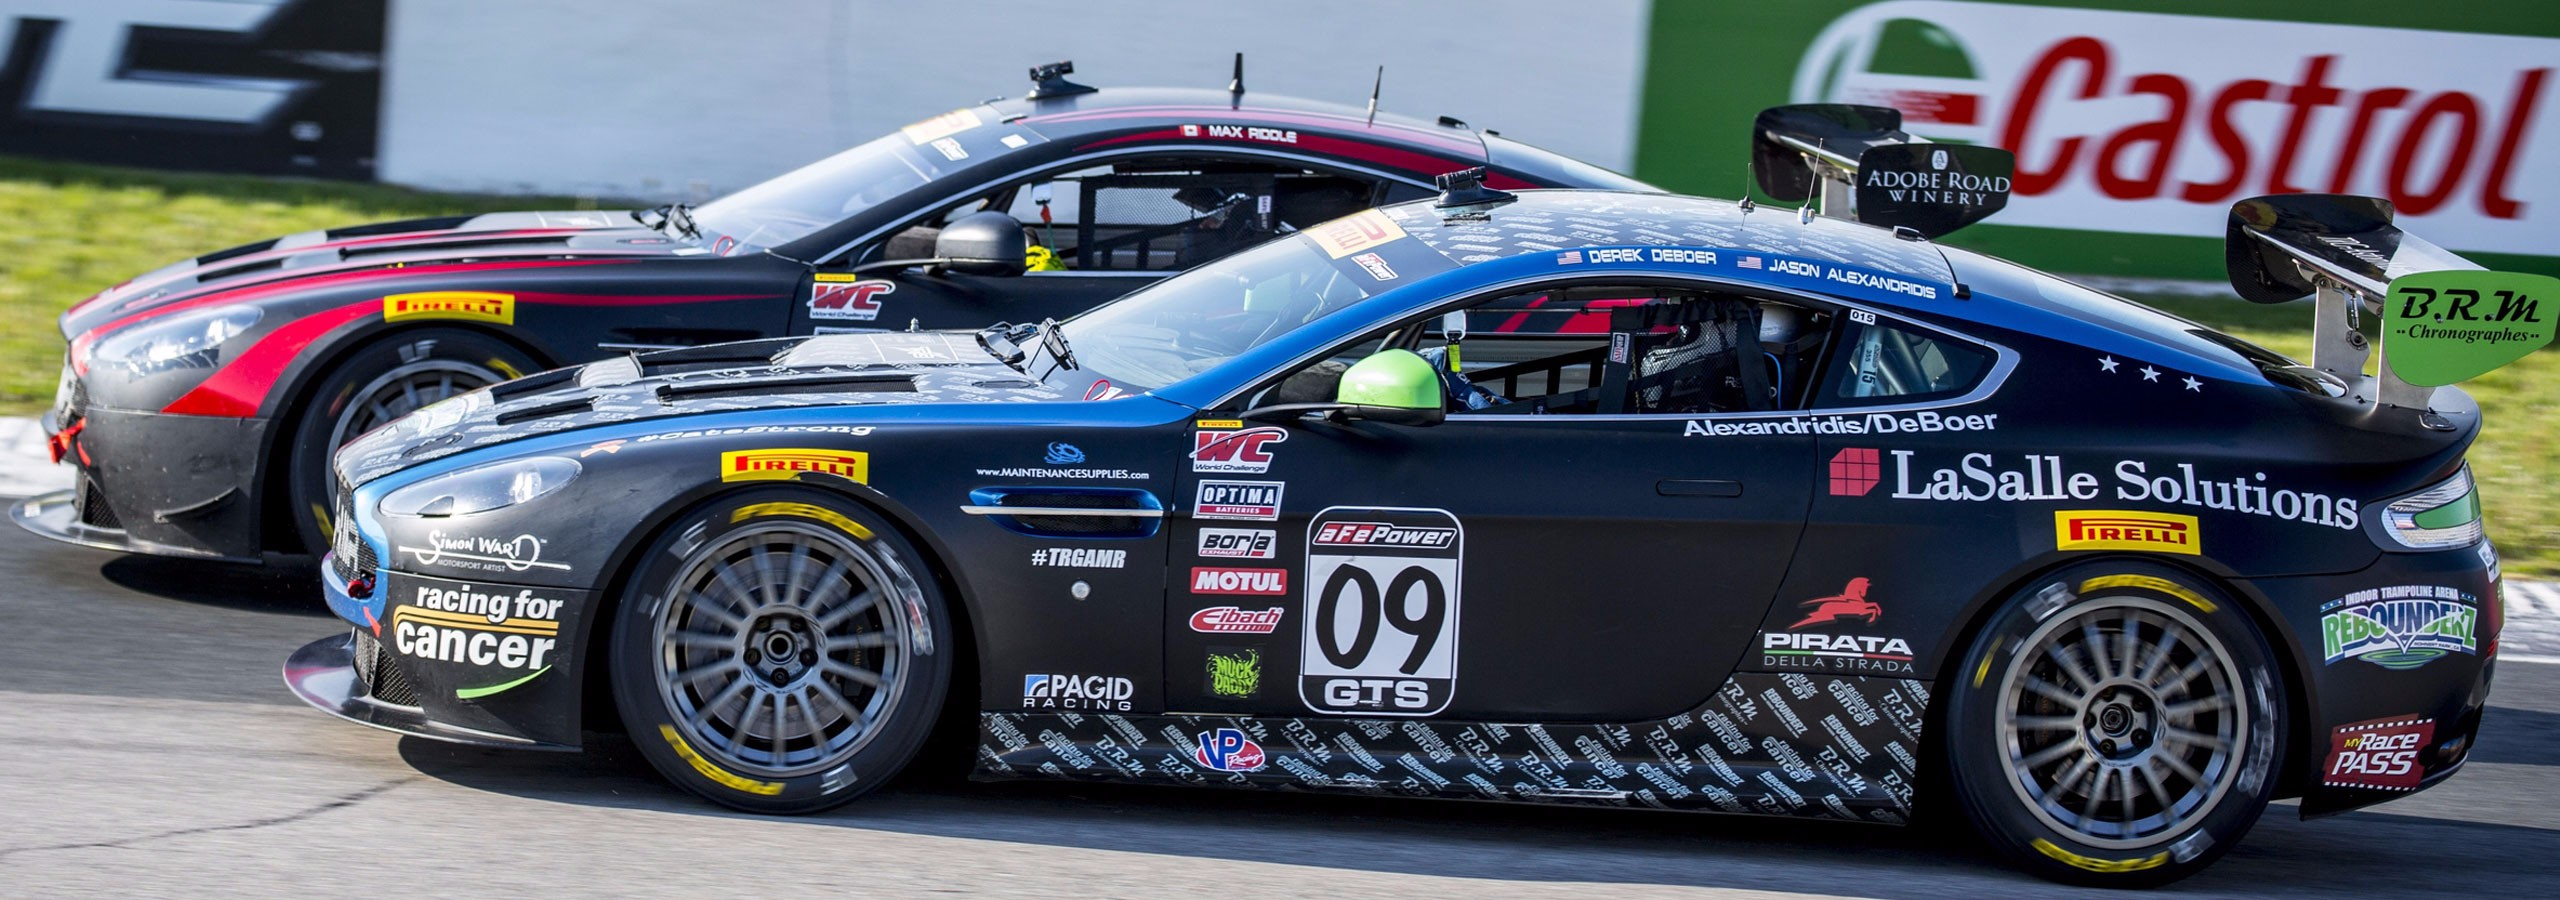 Victory in Canada: TRG-Aston Martin Racing Earns 3 Wins, 6 Podiums Over PWC Race Weekend